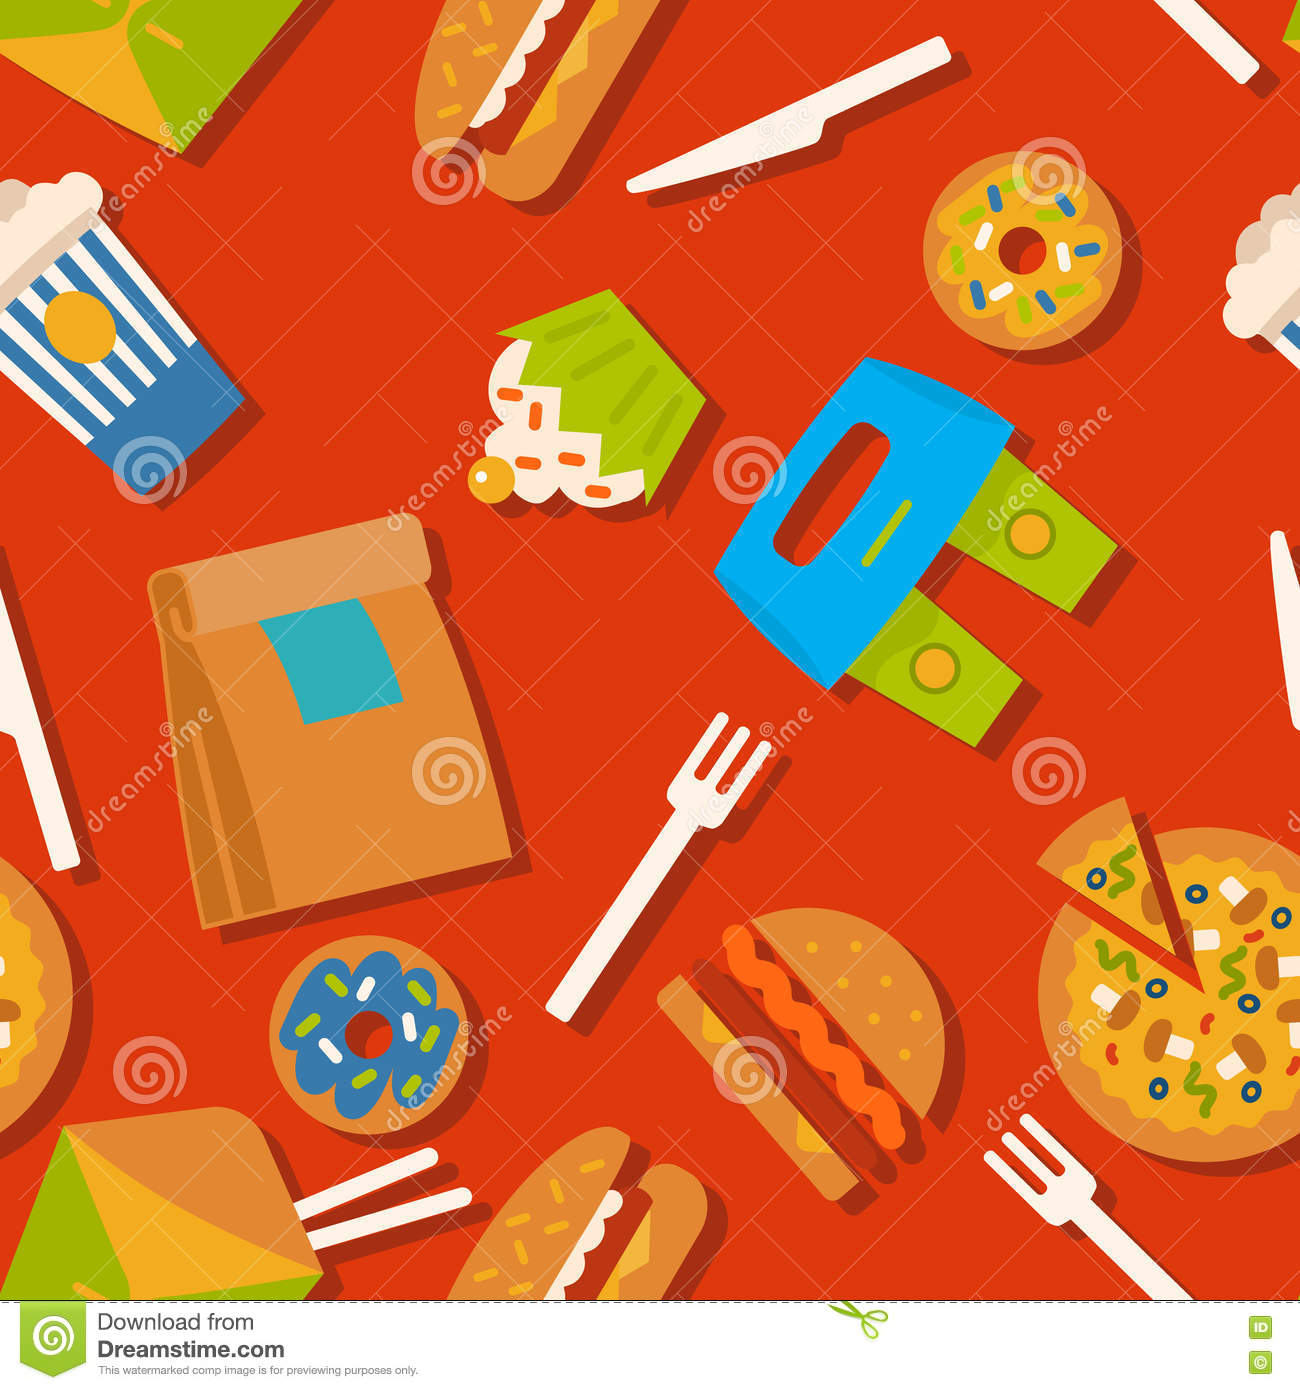 Background With Fast Food Symbols. Menu Pattern. Royalty